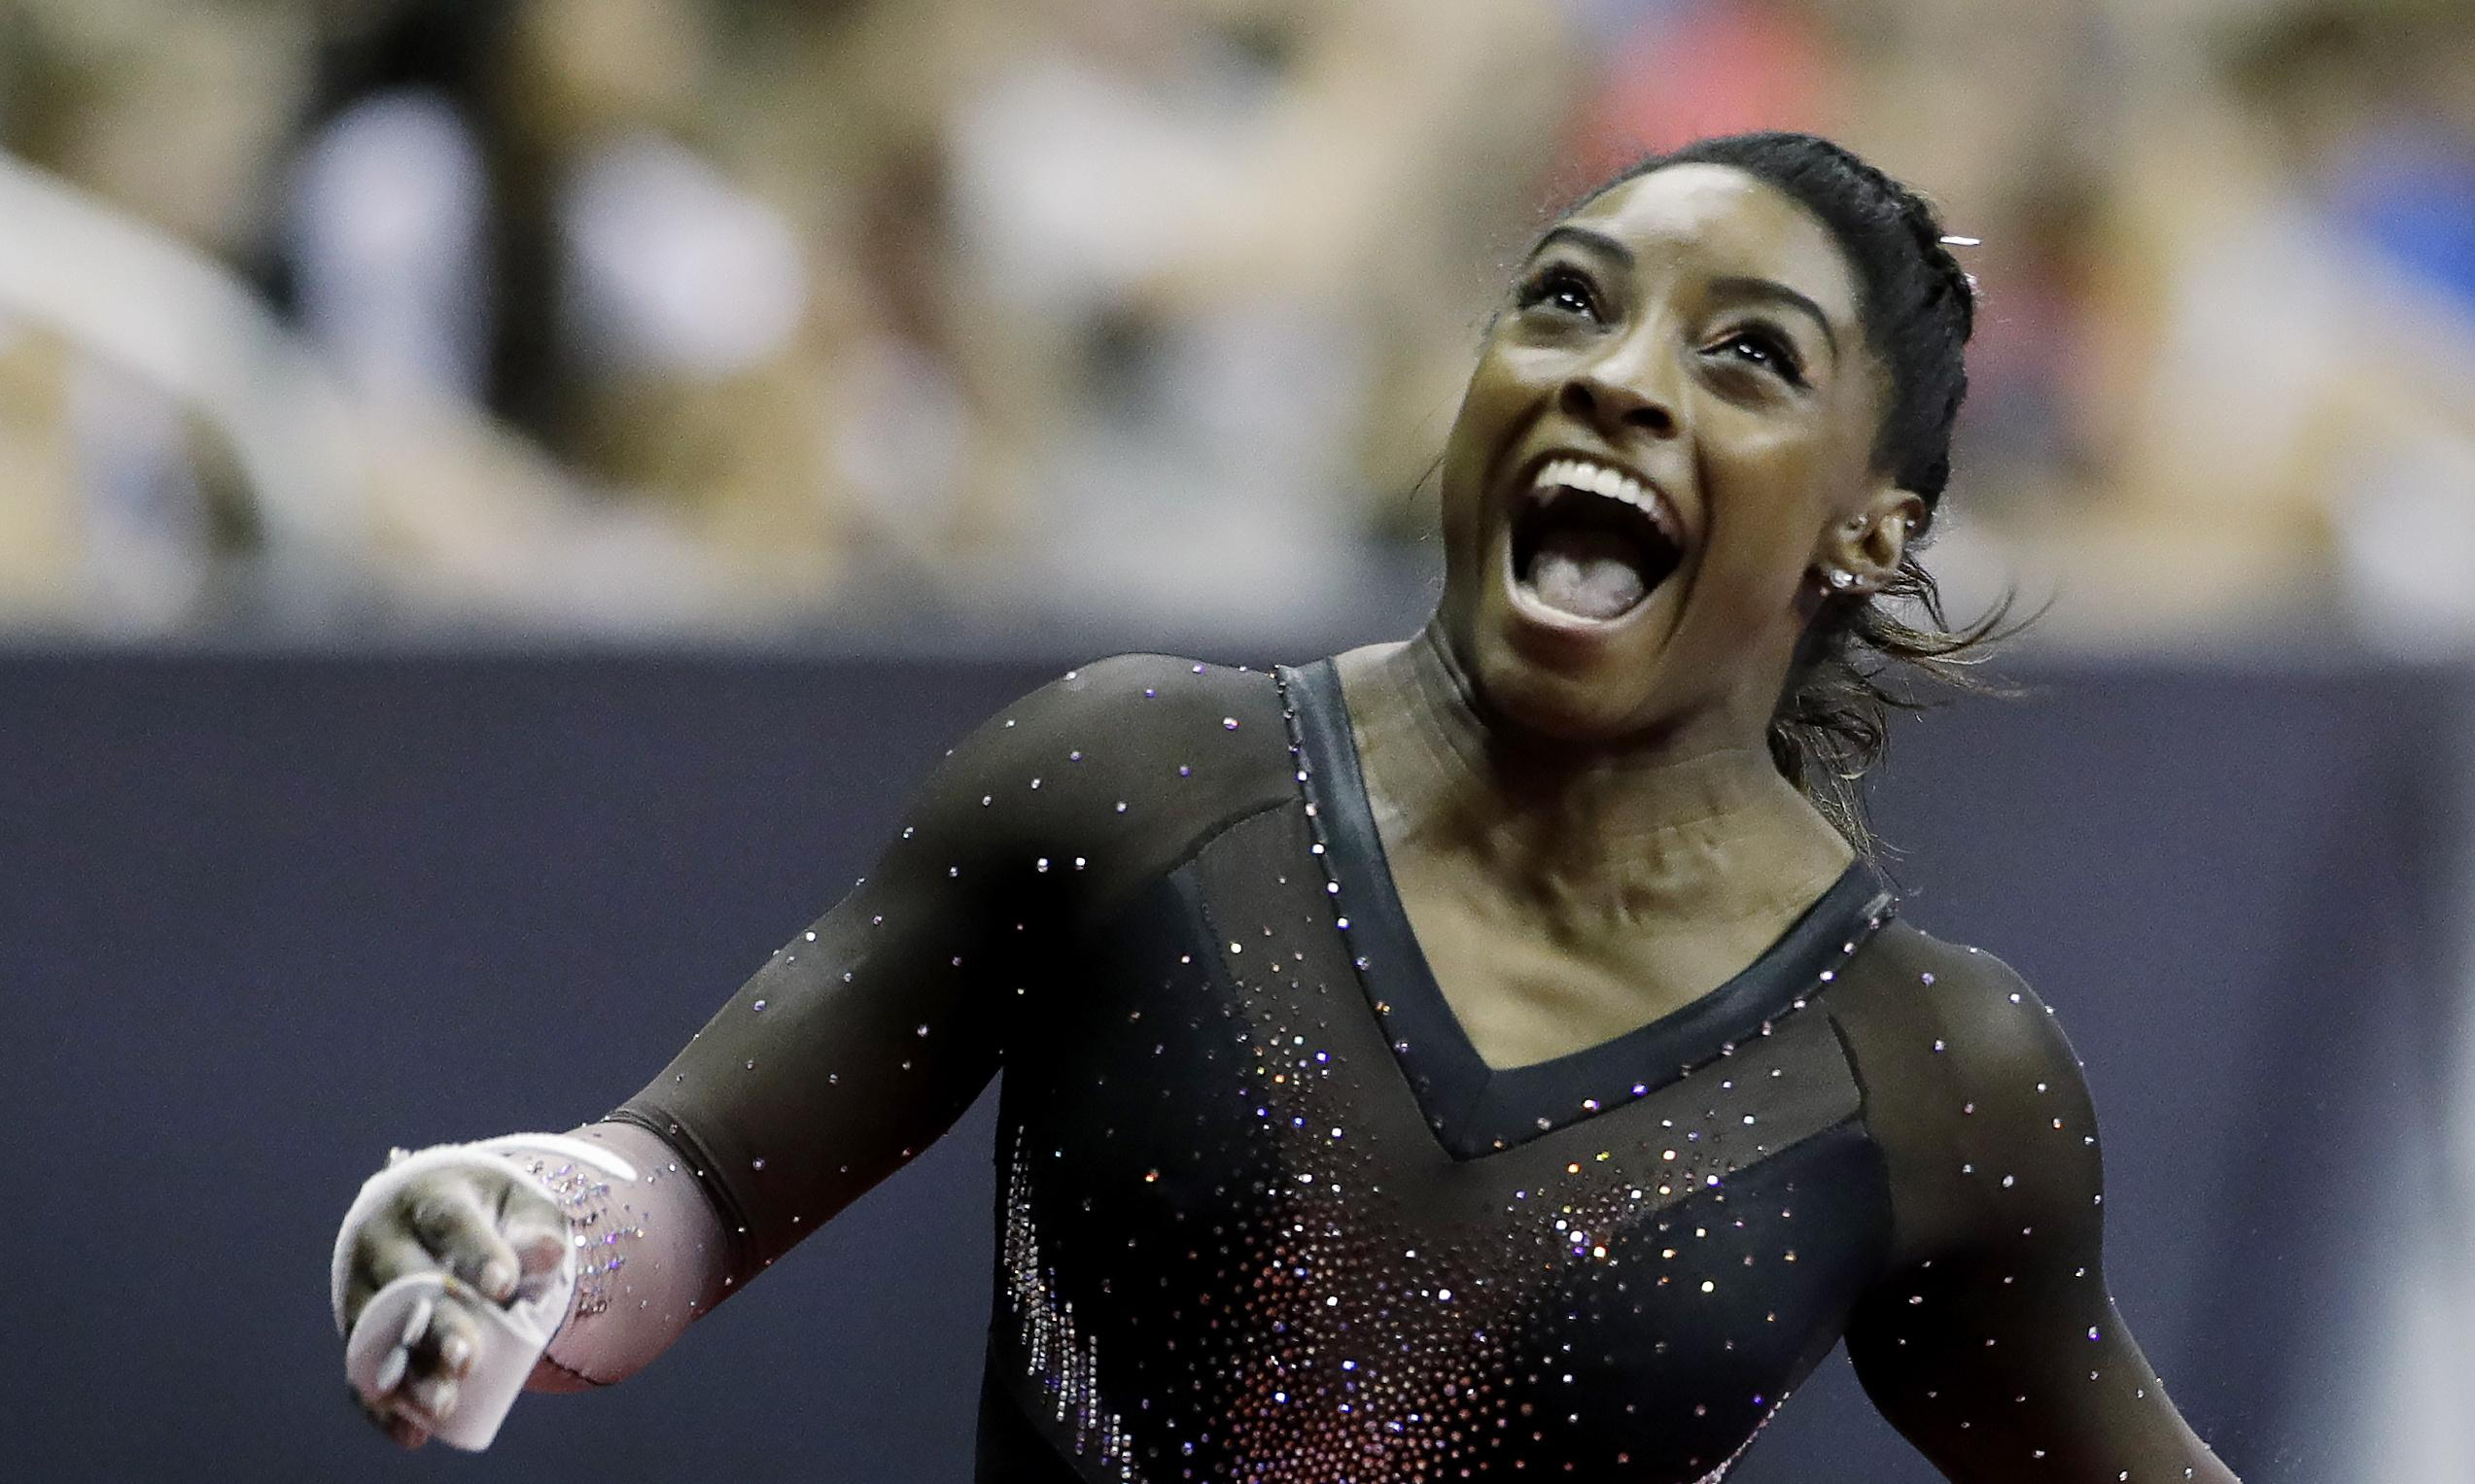 How wonderful to watch Simone Biles' defiant joy in our dark times